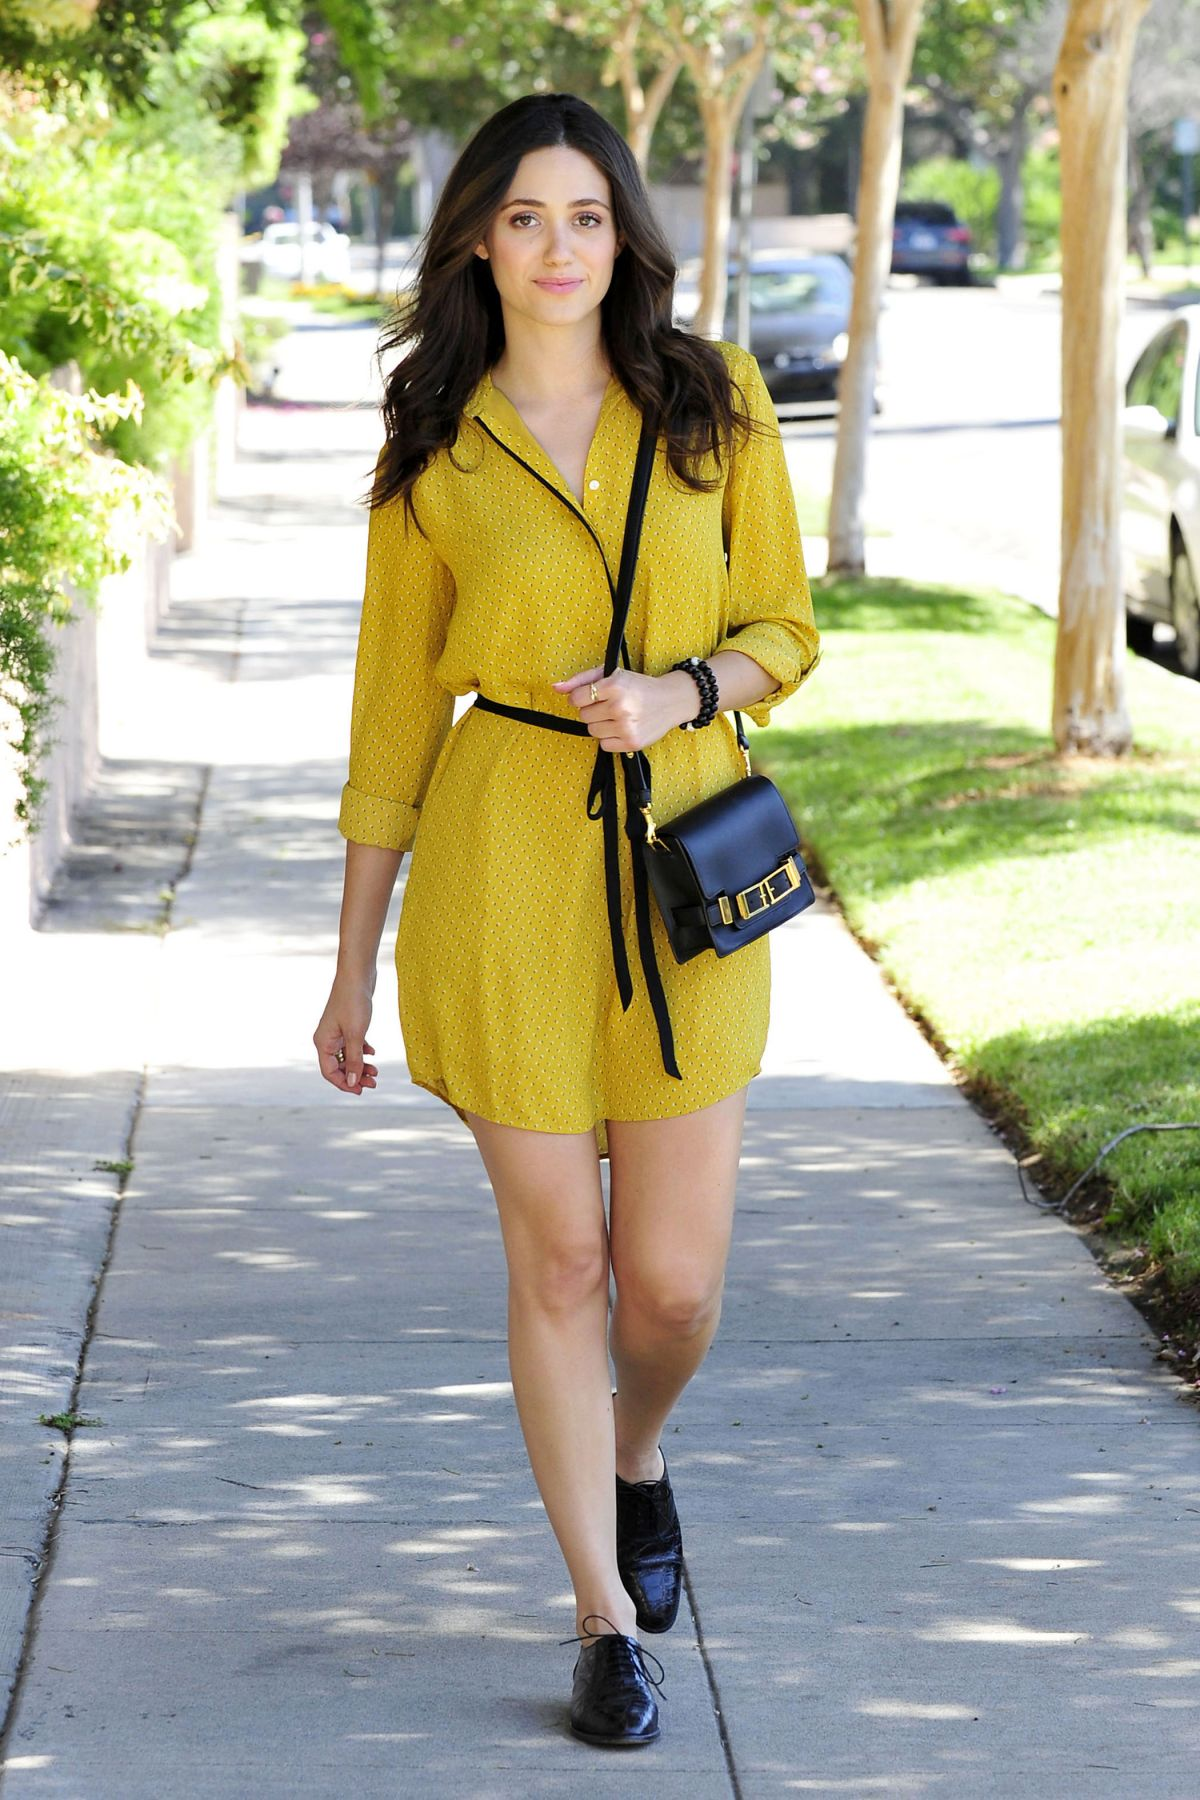 EMMY ROSSUM Out and About in Beverly Hills 1408